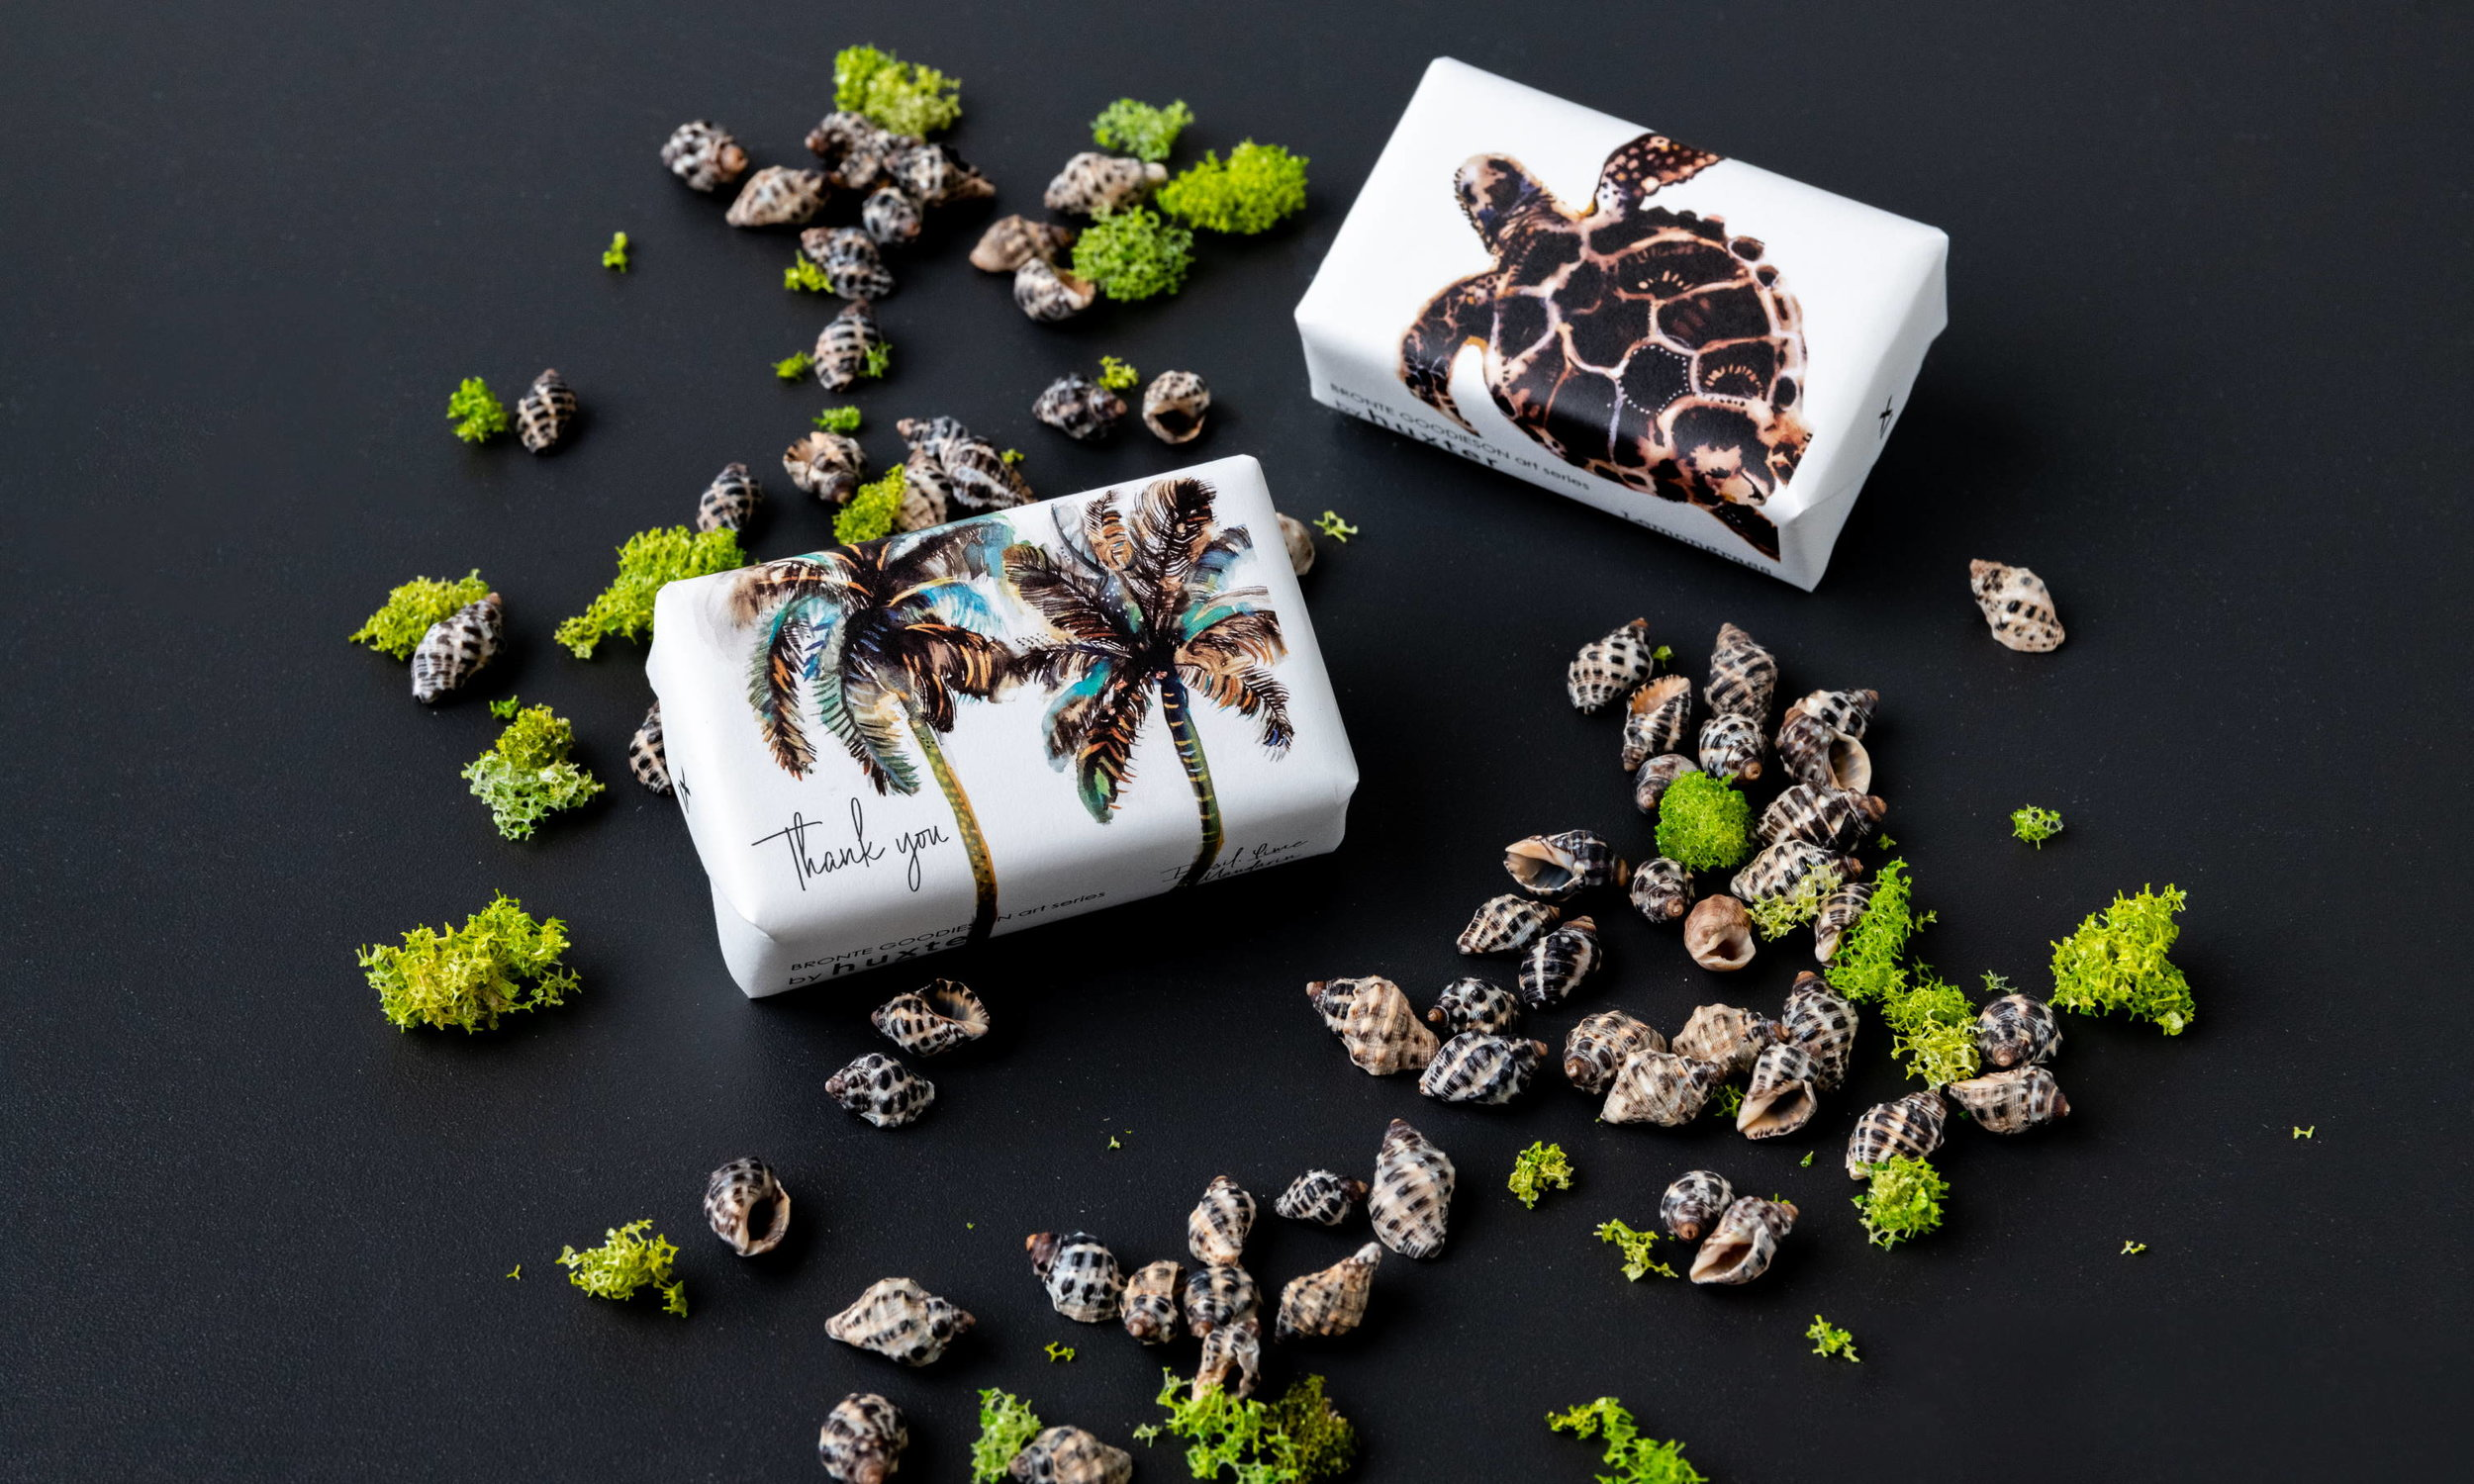 Product Photography for Soap Small Business (Huxter)